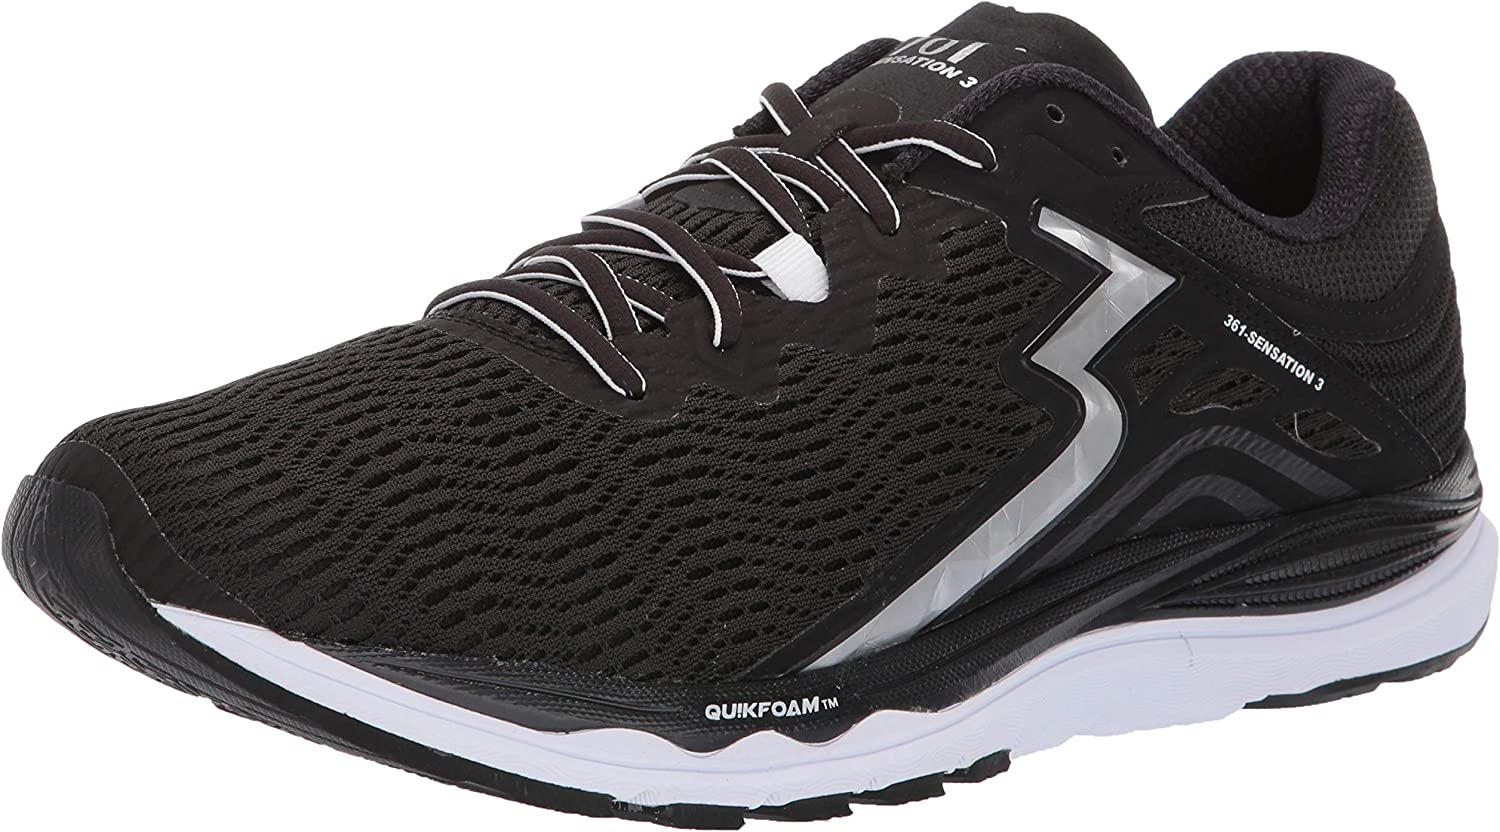 361 Men's Sensation 3 Running shoes Sneaker Black Silver 11.5 M US